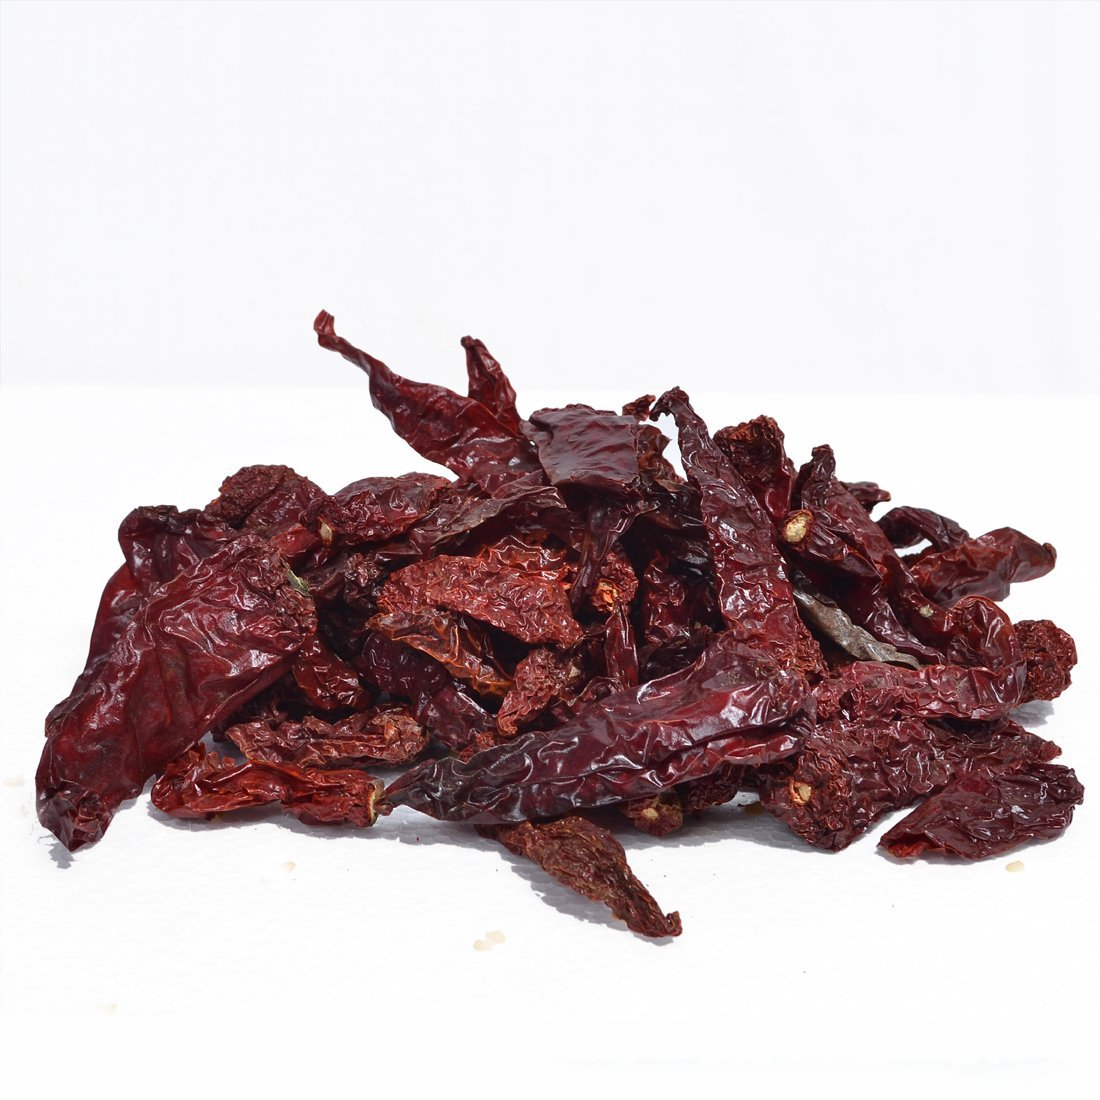 Leeve Dry Fruits Fresh Dried Kashmiri Chilli - 400 Grams by Leeve Dry Fruits (Image #3)